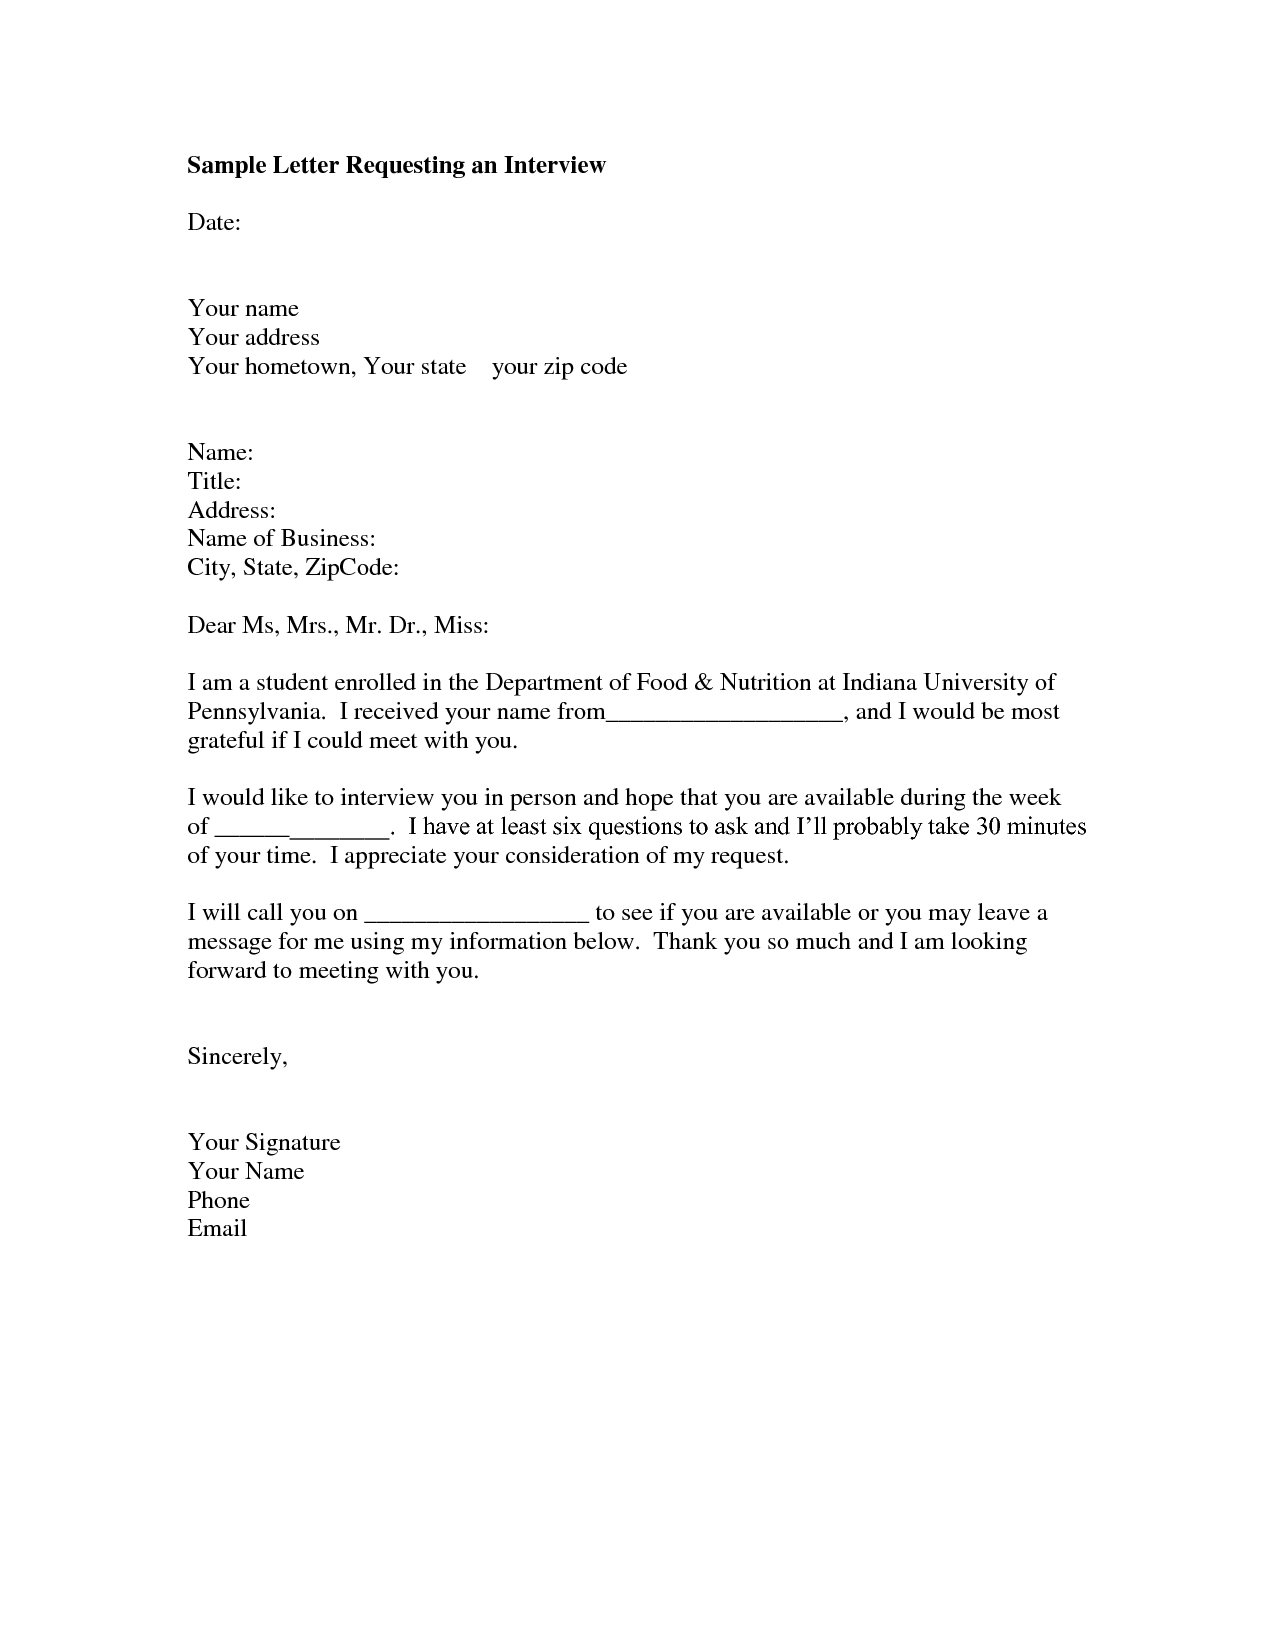 Interview request letter sample format of a letter you can use to interview request letter sample format of a letter you can use to request an interview with a prospecitive employer altavistaventures